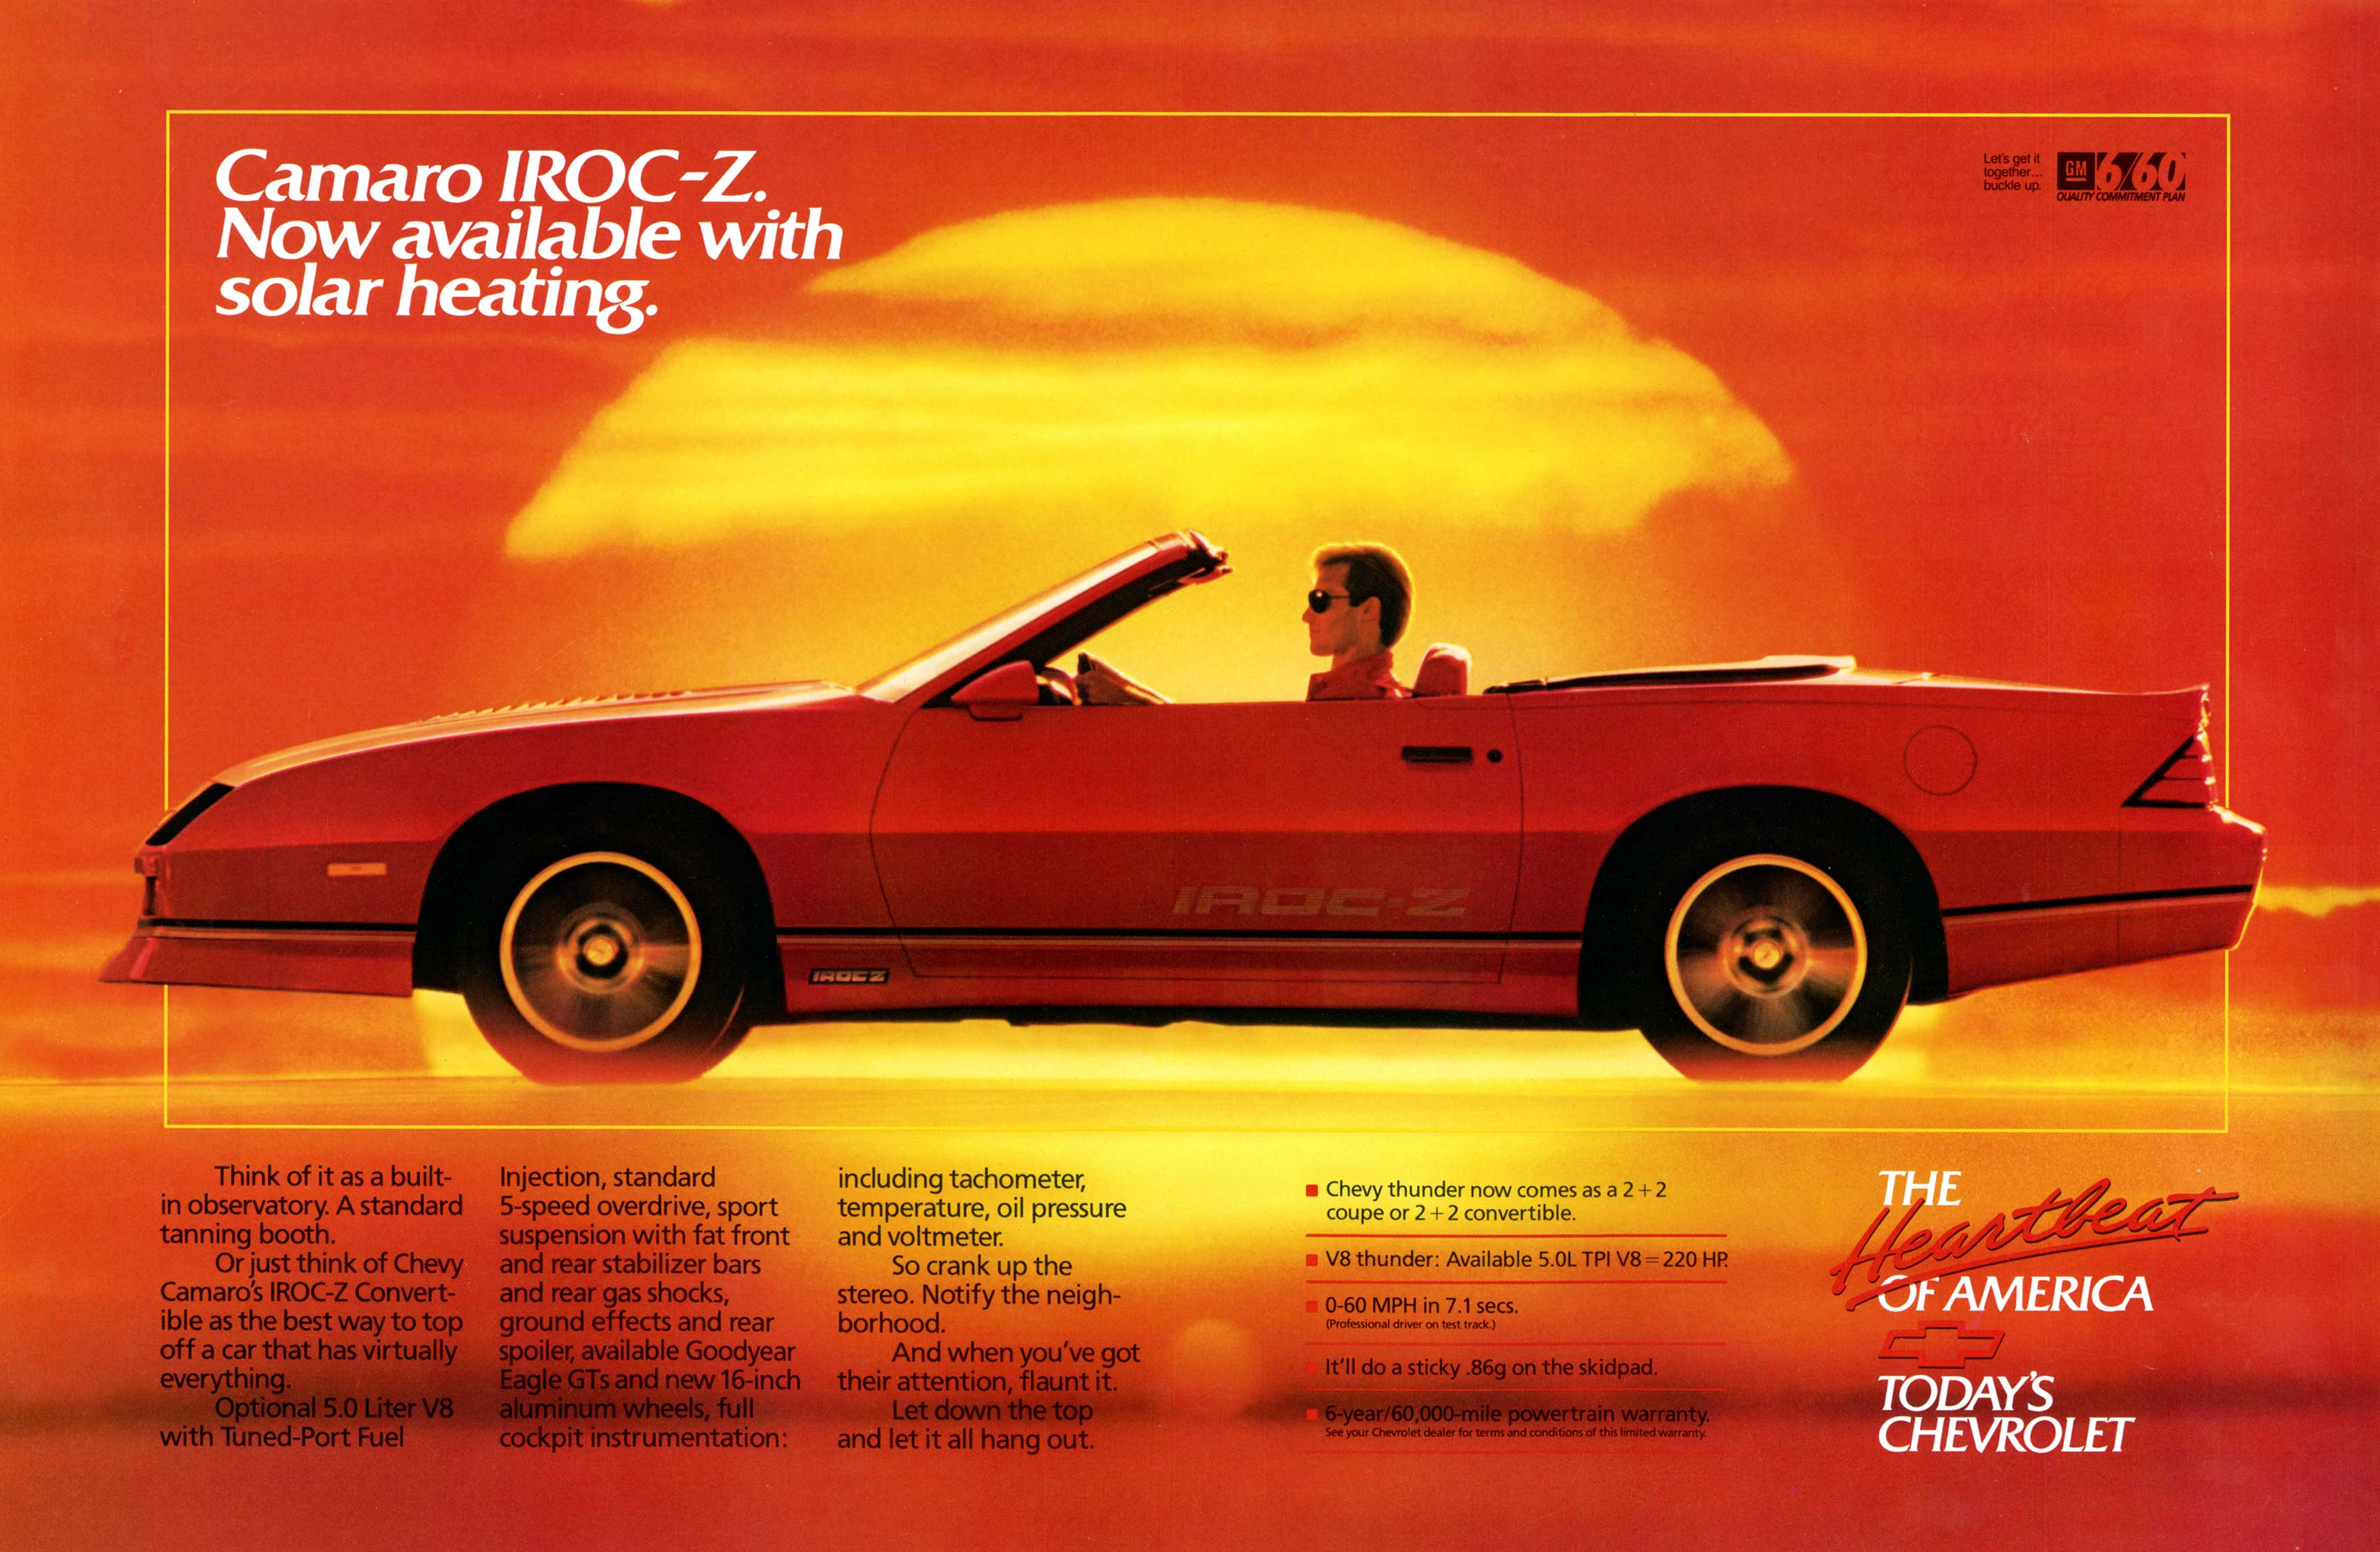 2018 Camaro Iroc Z >> Coolest 3rd Gen Chevy Camaro Ads of the 1980s! | Chevys Only